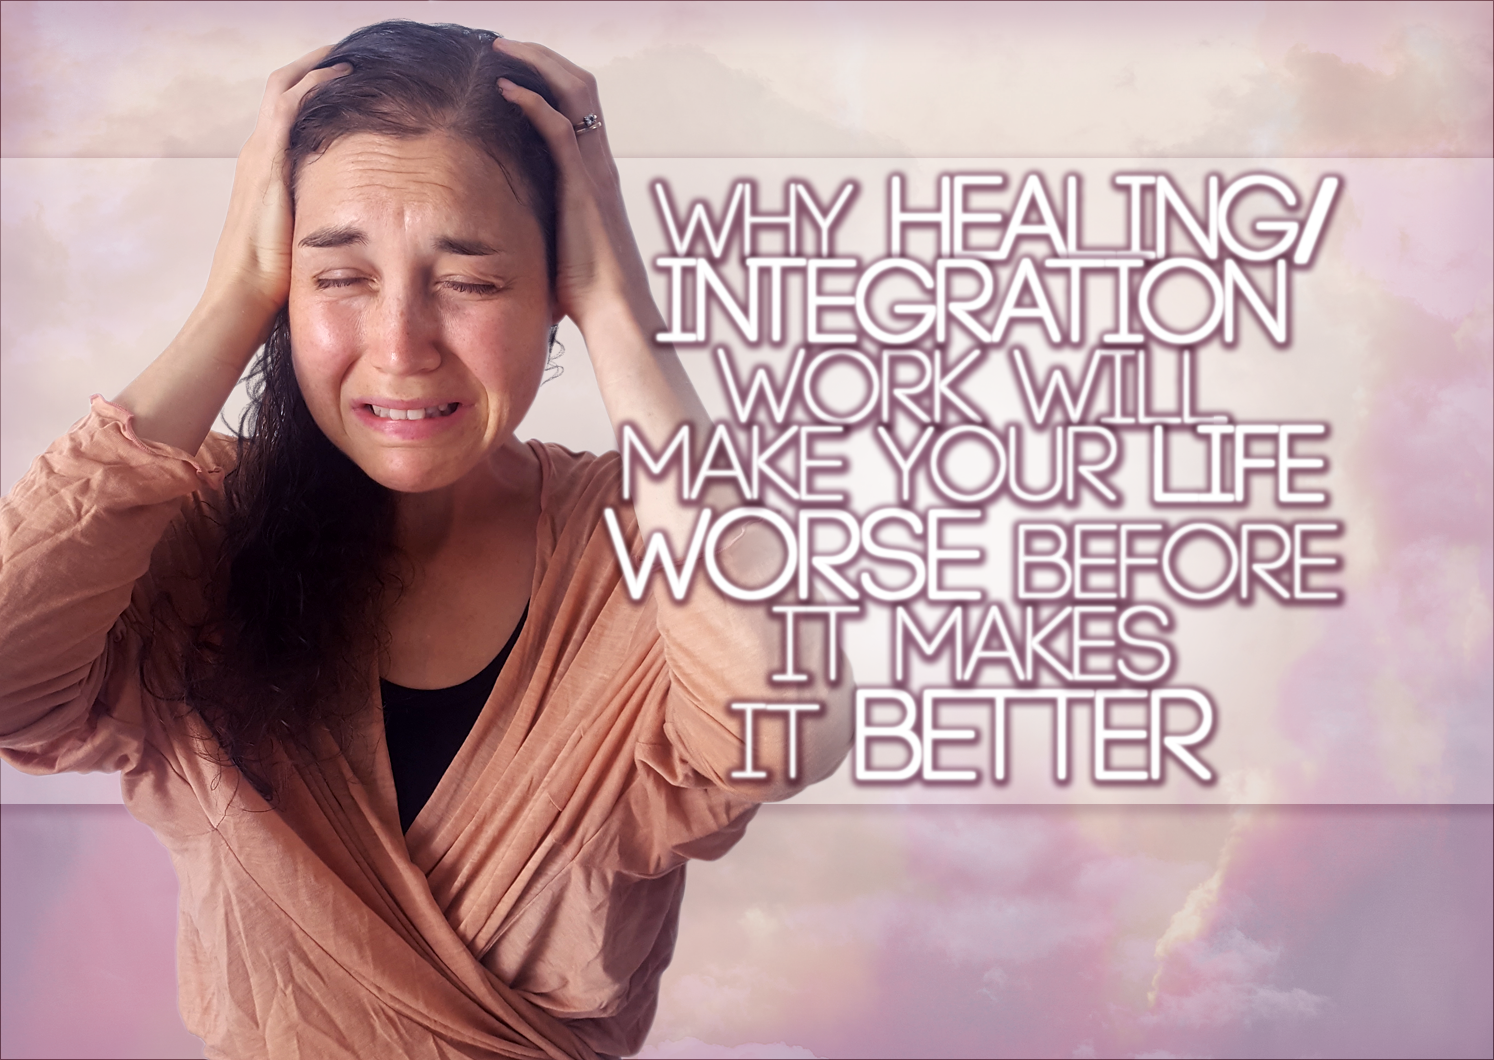 What If Your 'Healing' Work Is Making Your Life Worse?